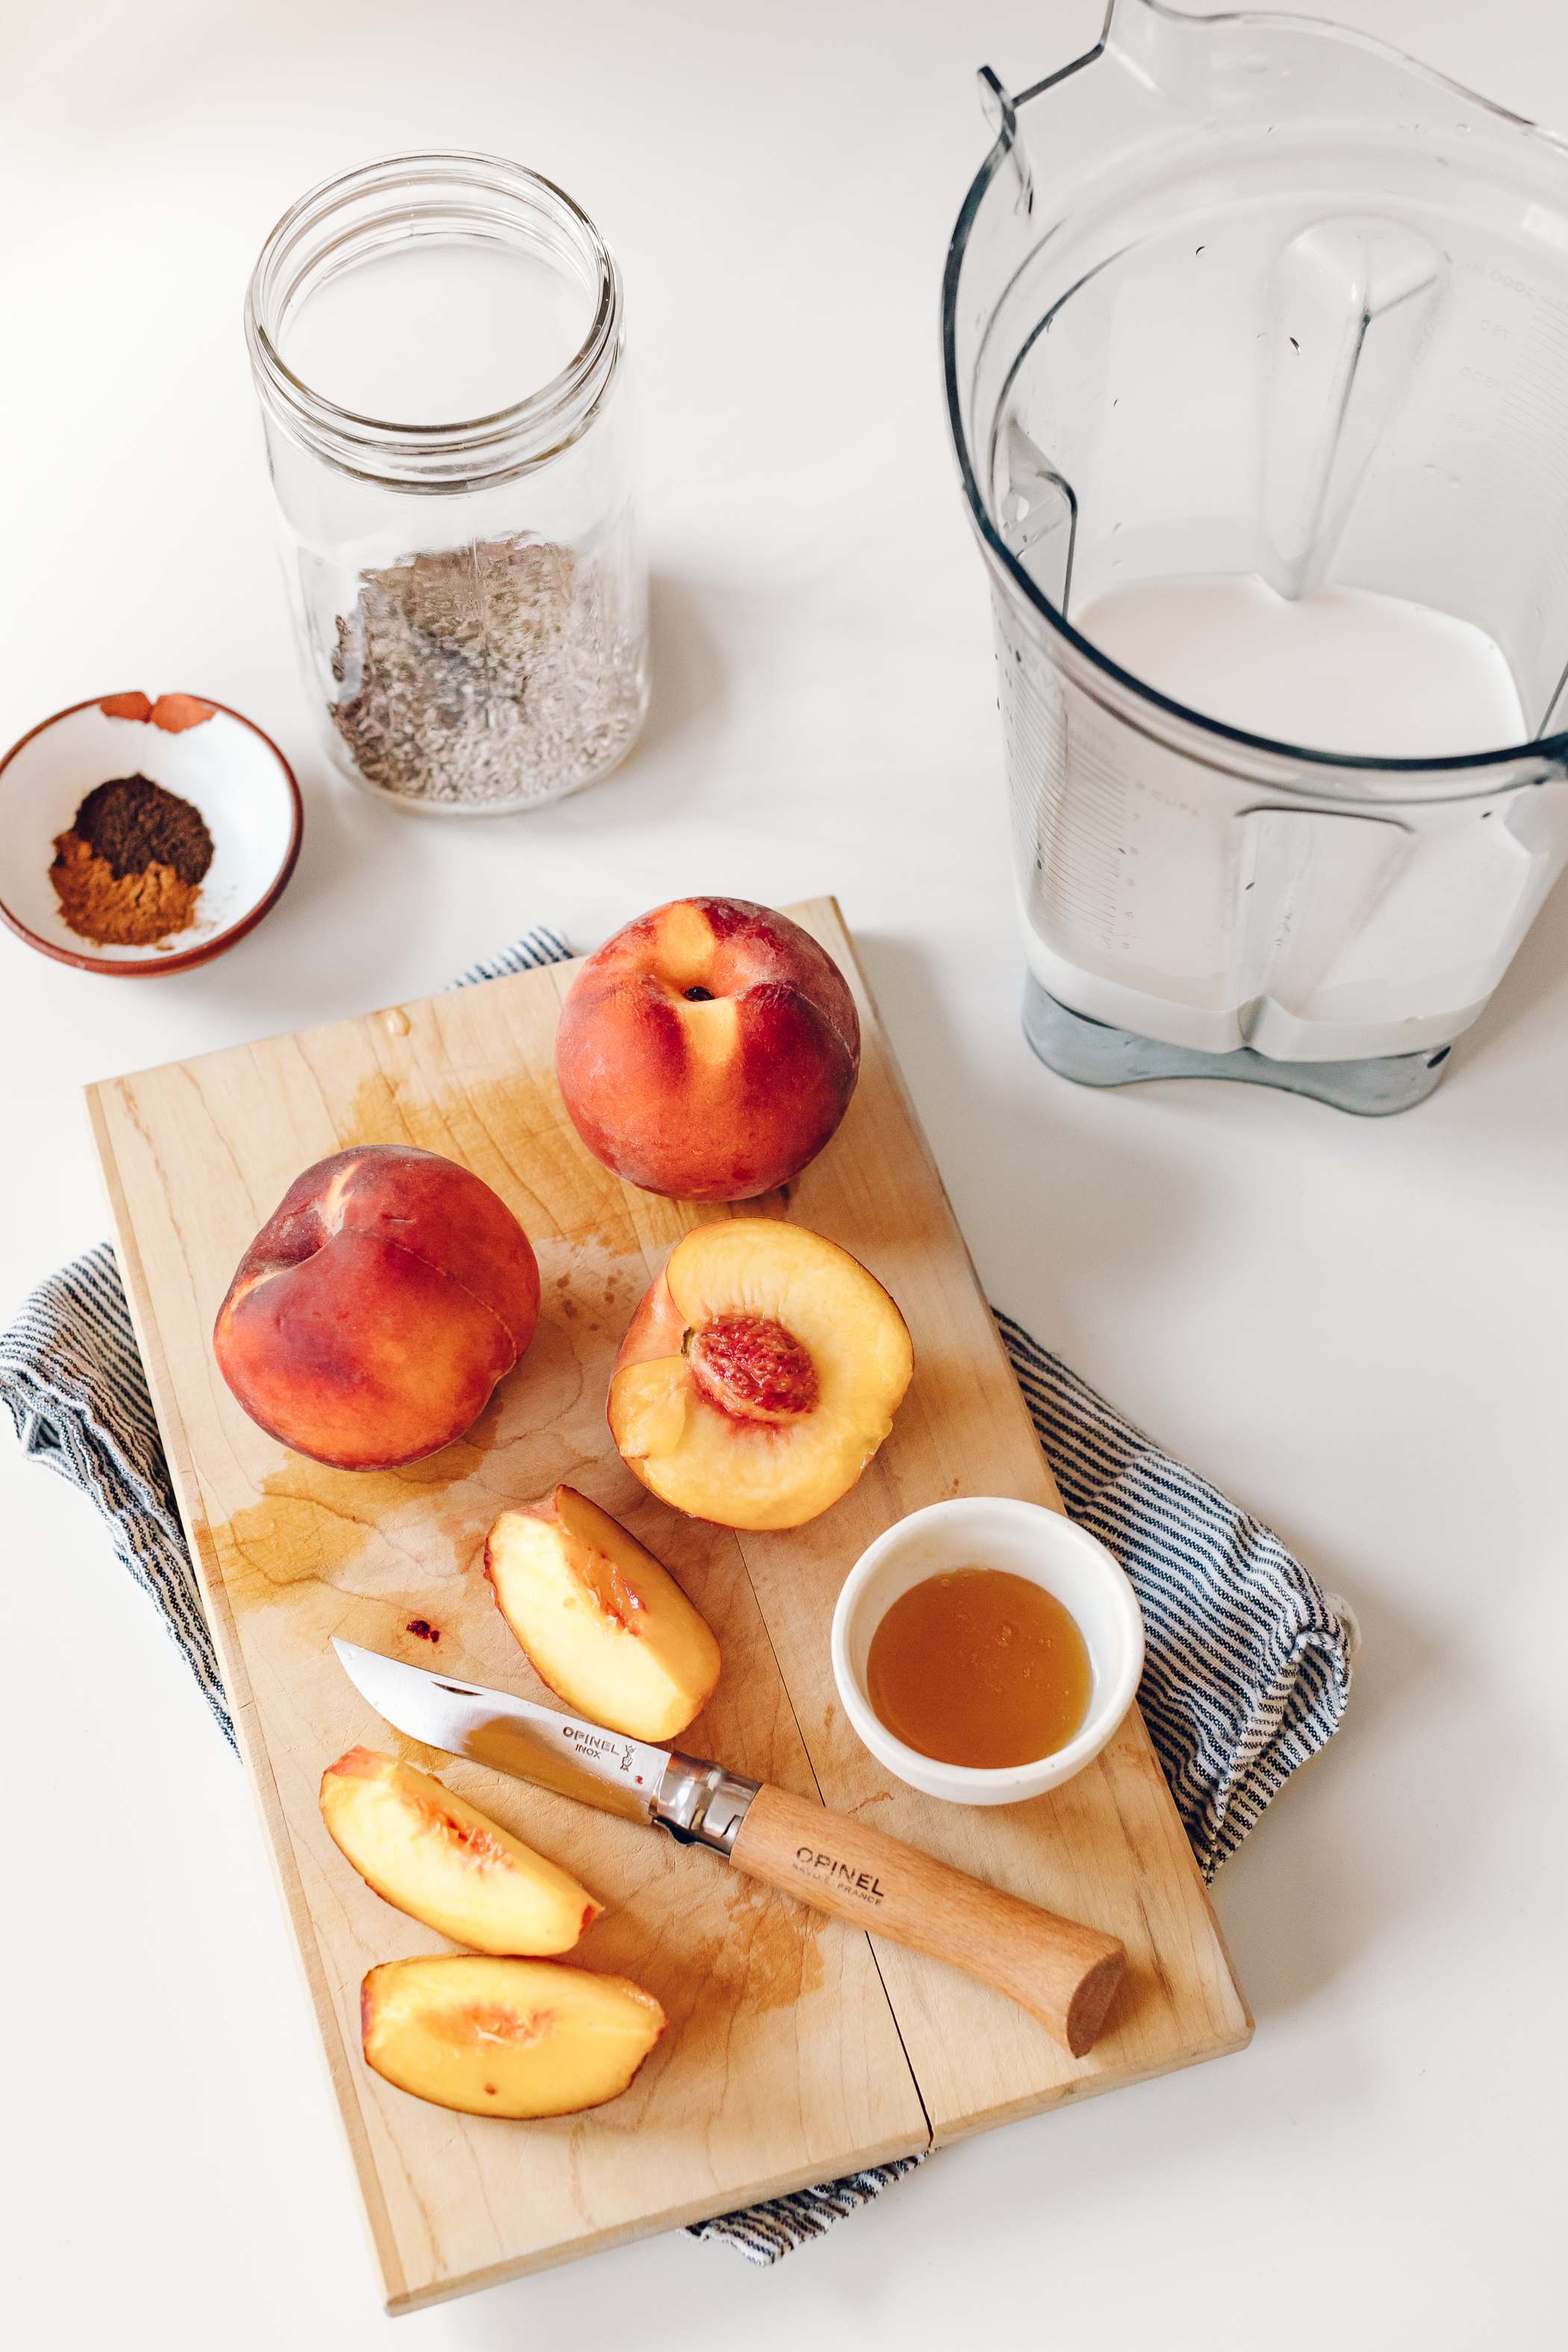 Peach Chia Breakfast Shake by Jessie May from At Home in the Whole Food Kitchen